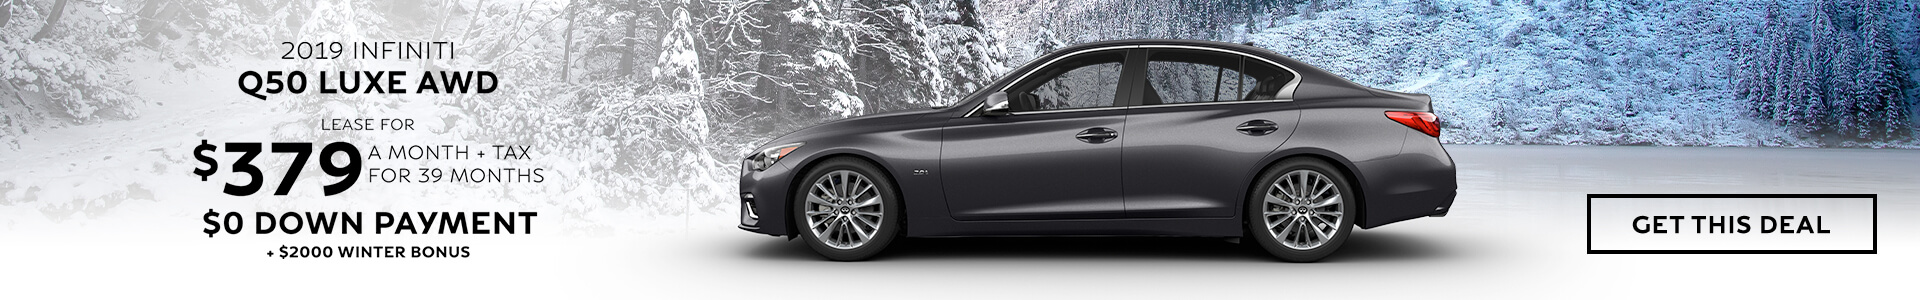 Q50 LUXE - Lease for $379